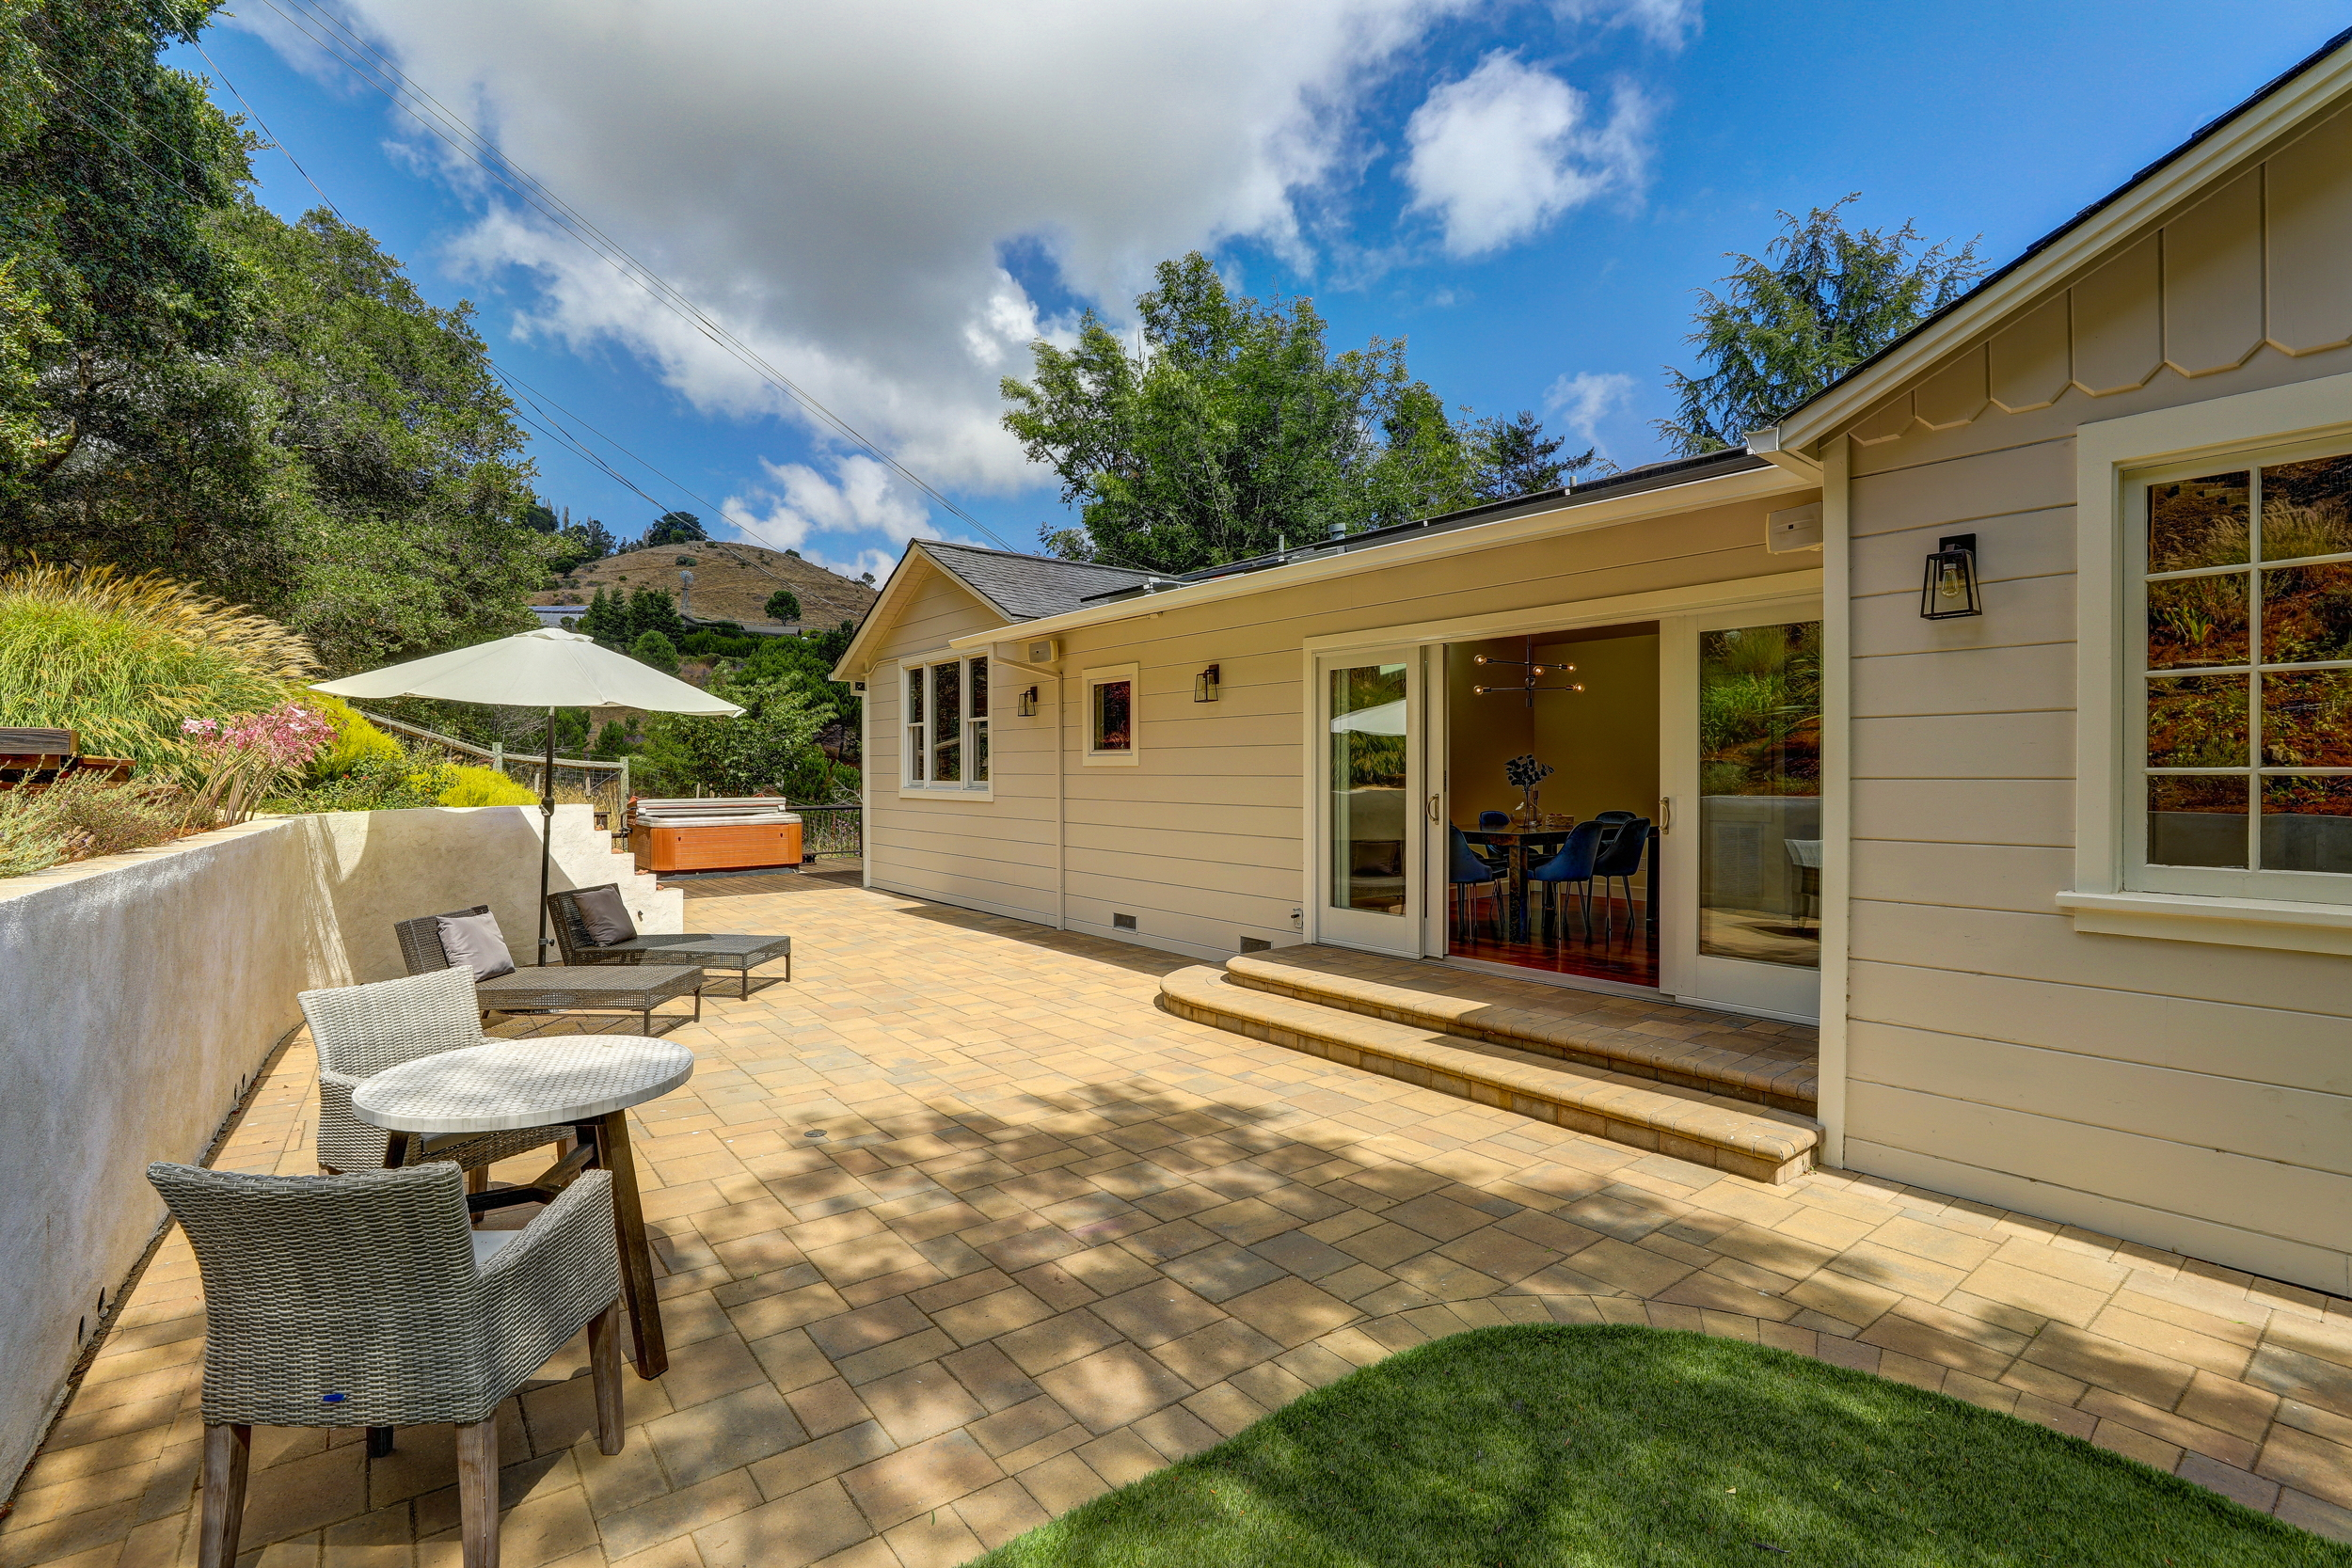 14 McAllister Avenue, Kentfield   Listed by Own Marin at Compass ...